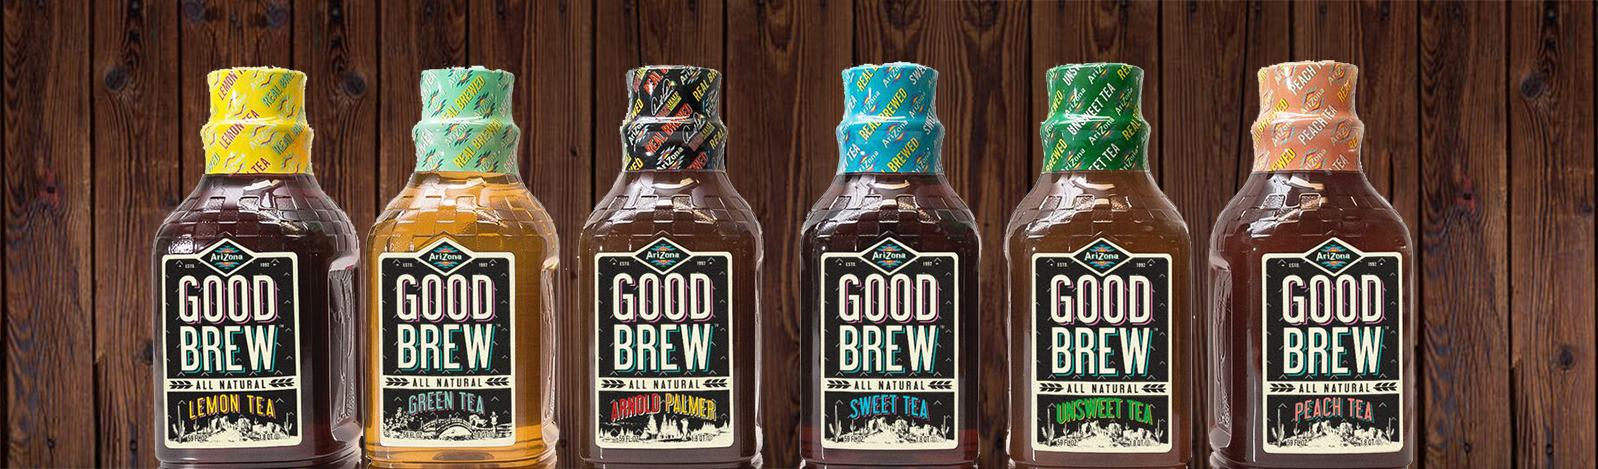 Arizona Beverage Labels